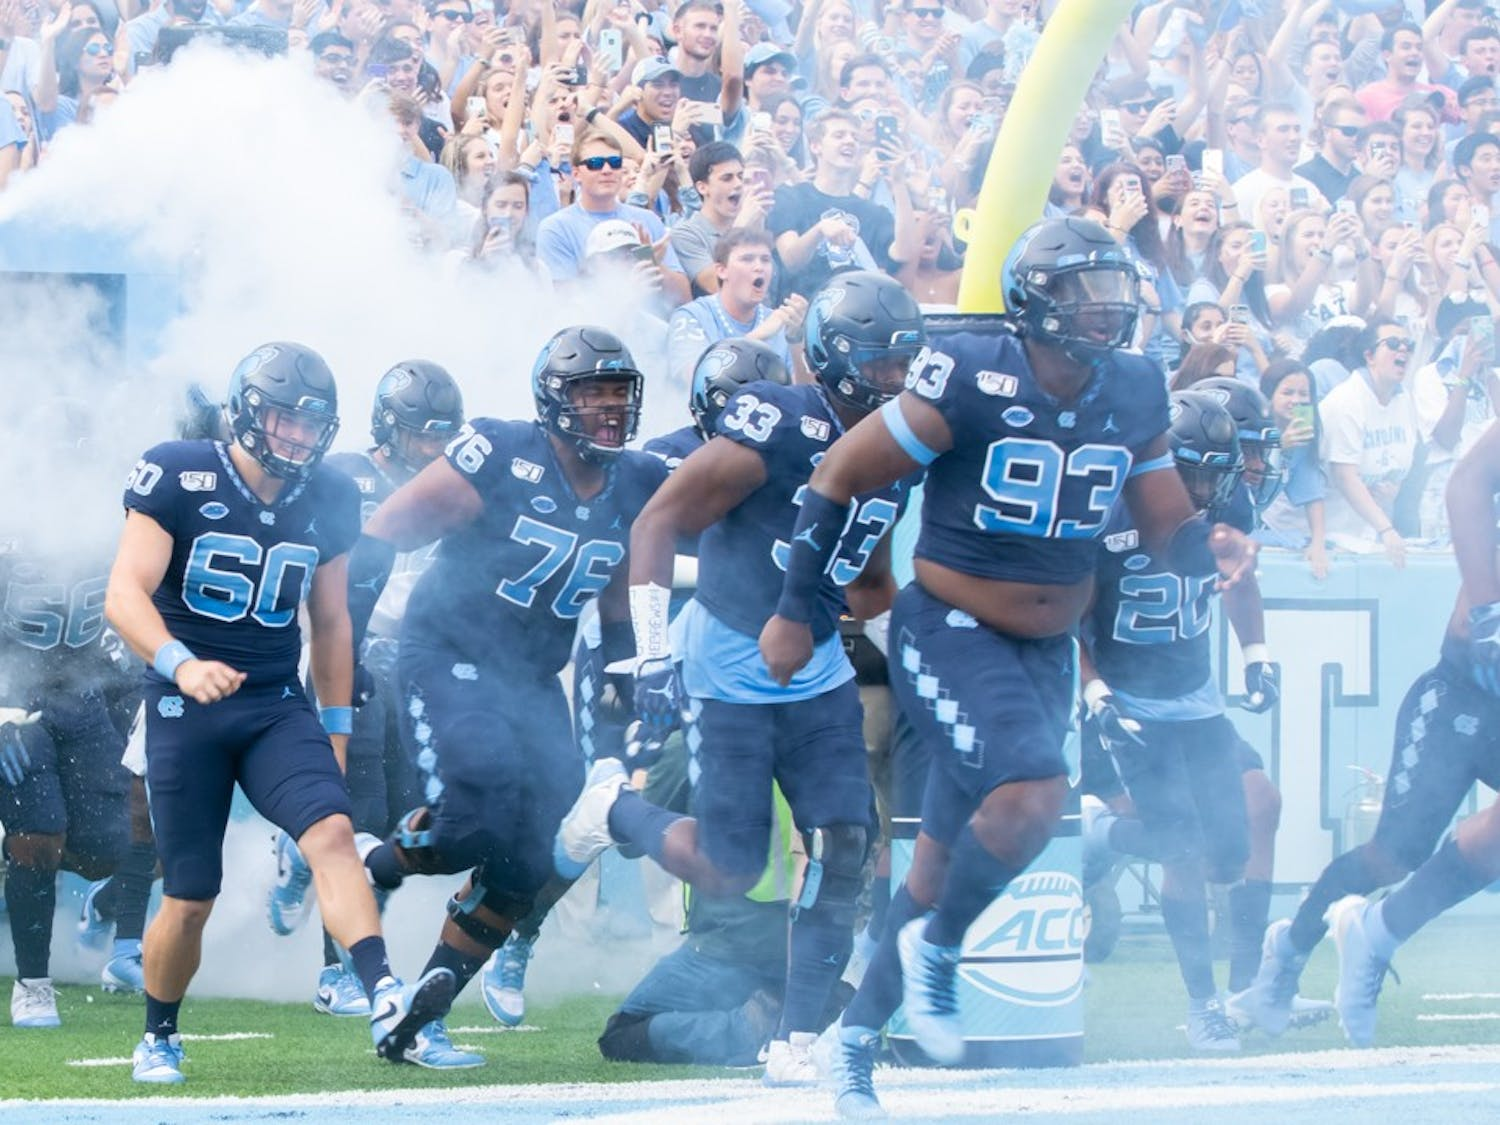 The UNC football team runs out of the tunnel before the game against Duke on Oct. 26, 2019. UNC went on to beat Duke 20-17.